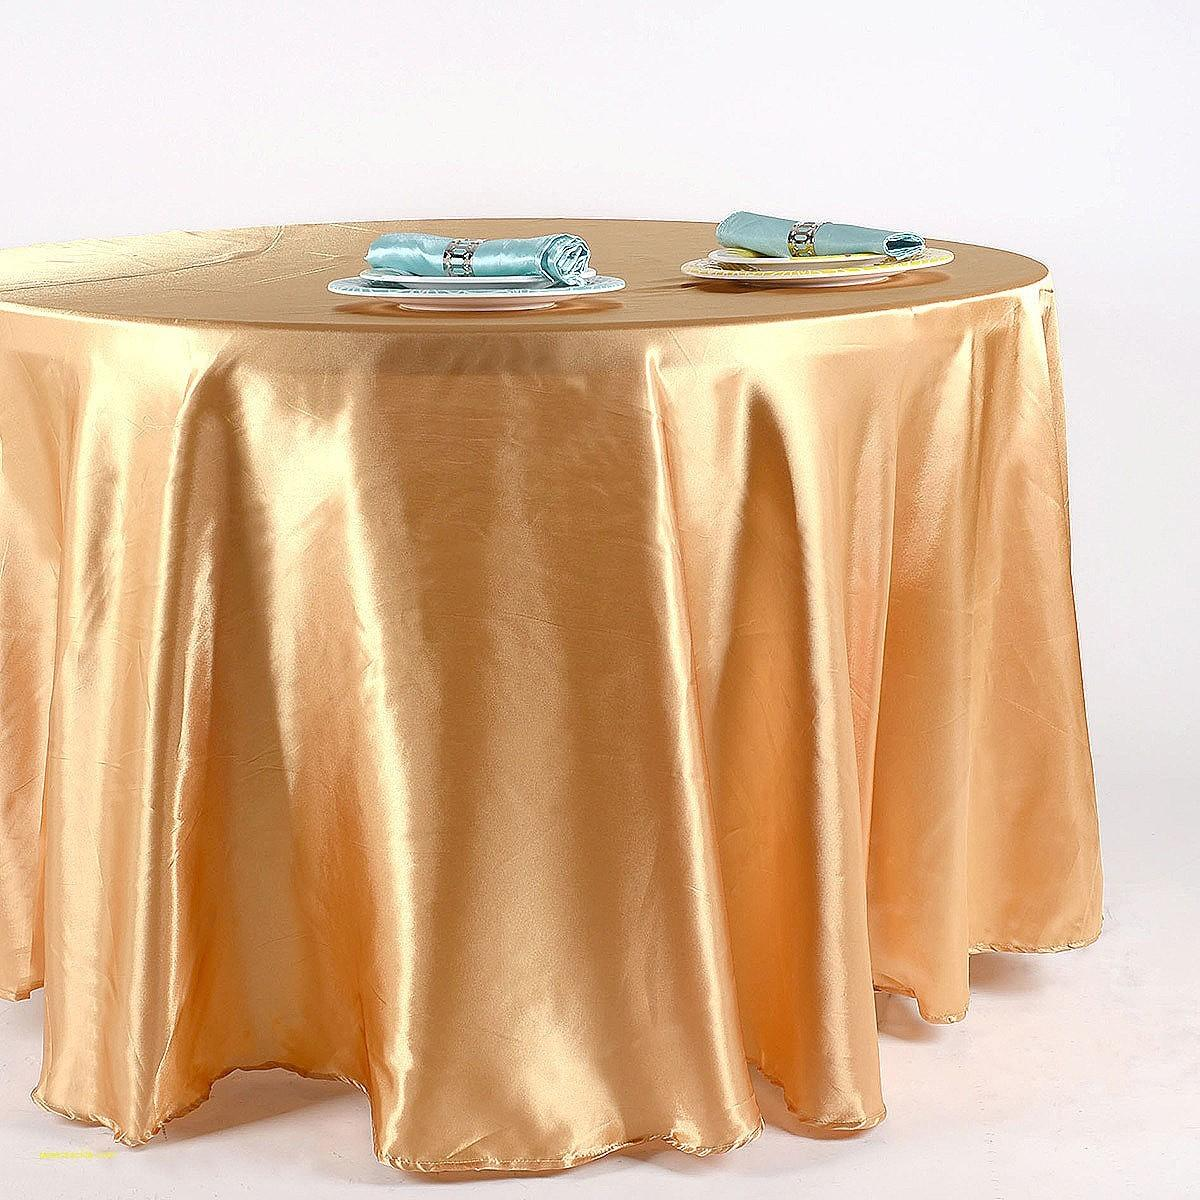 Tablecloths Best Gold Tableclothes Lame